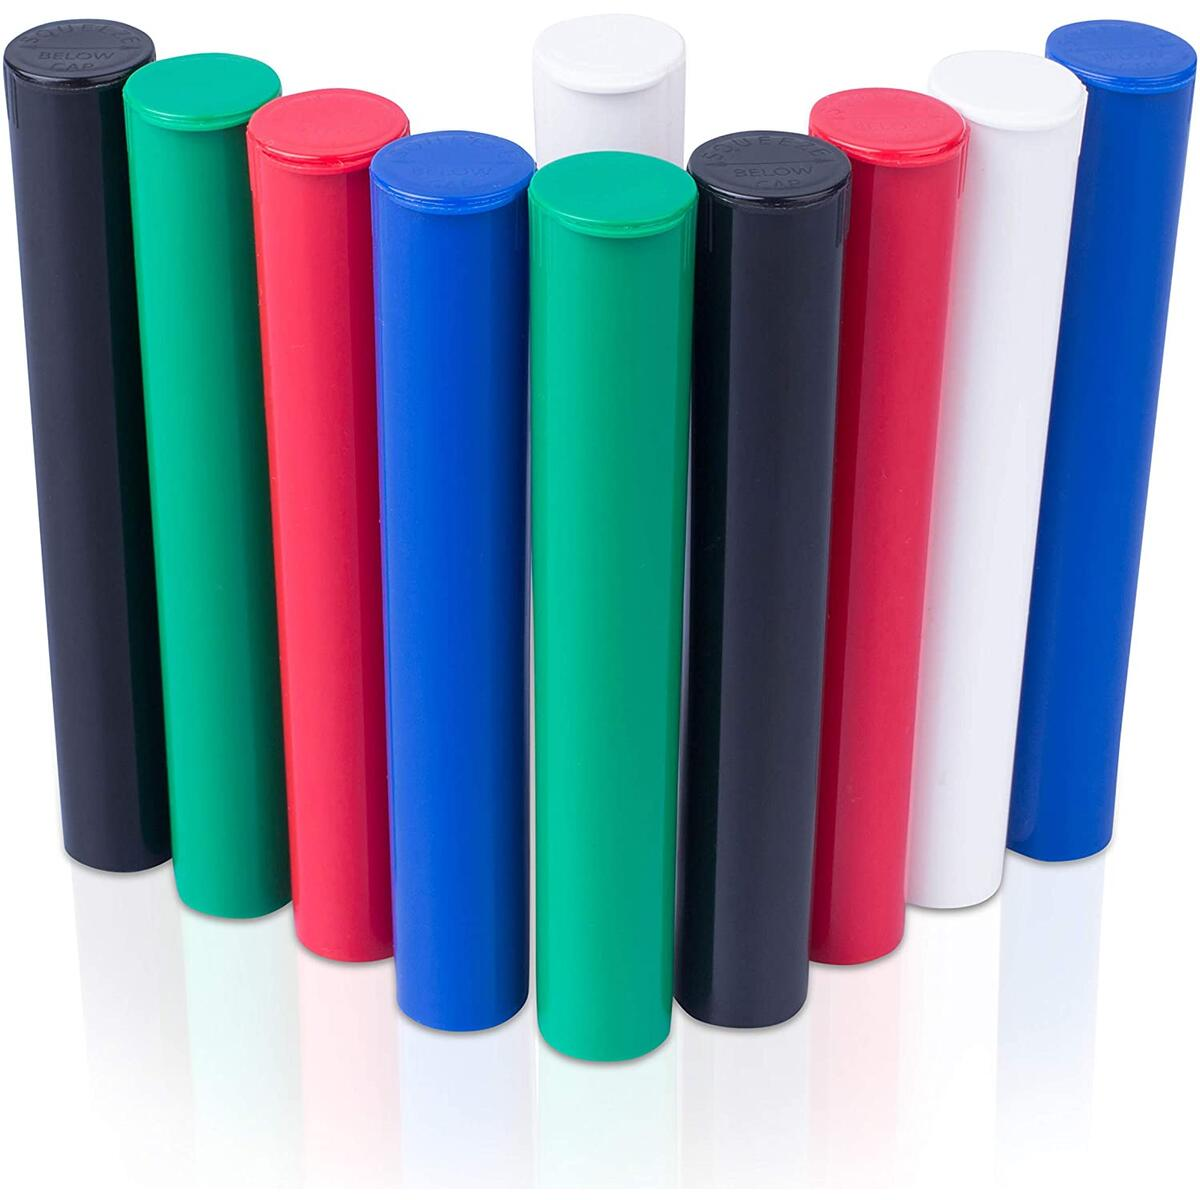 Smell Proof Doob Tube Holders - Airtight Storage Case - 4.5